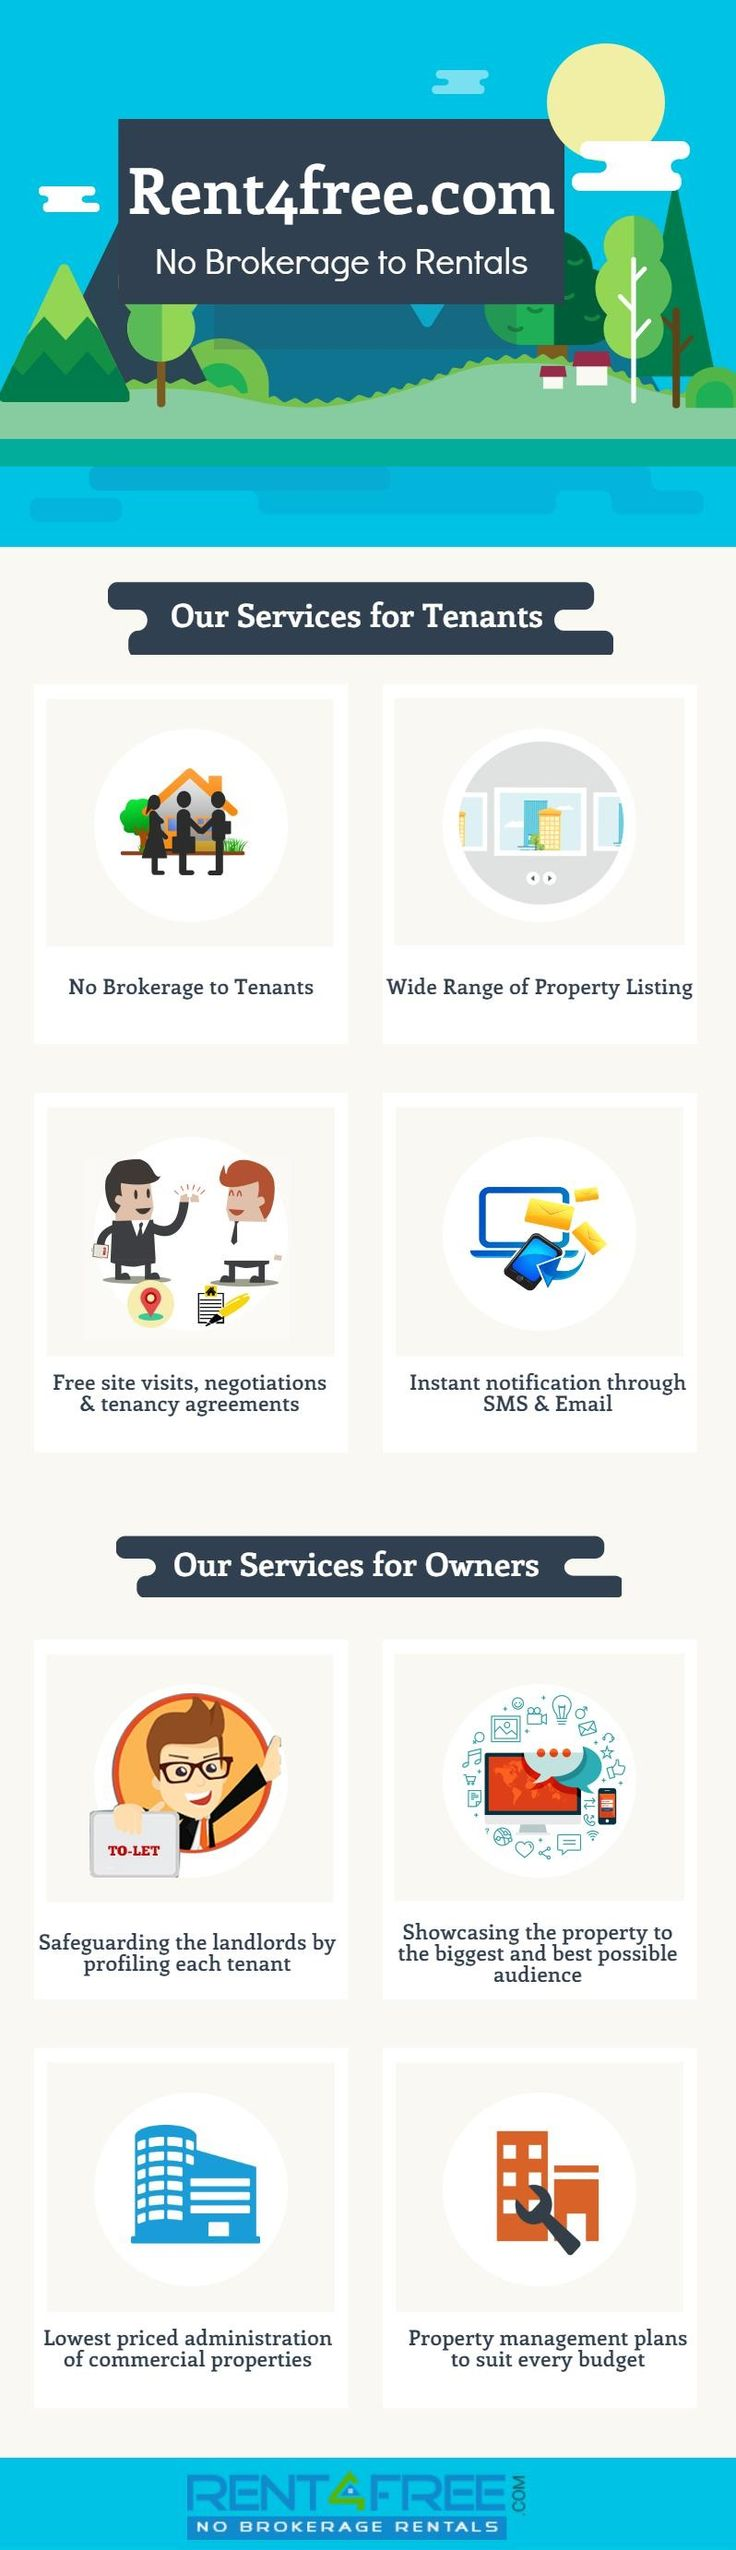 Rent4free.com is the only dedicated portal for rentals and the next big thing happening in the Indian rental market.We are providing value added services to tenants from site visits to registering the signed contract all with no brokerage charged to tenants. For more details visit https://rent4free.com